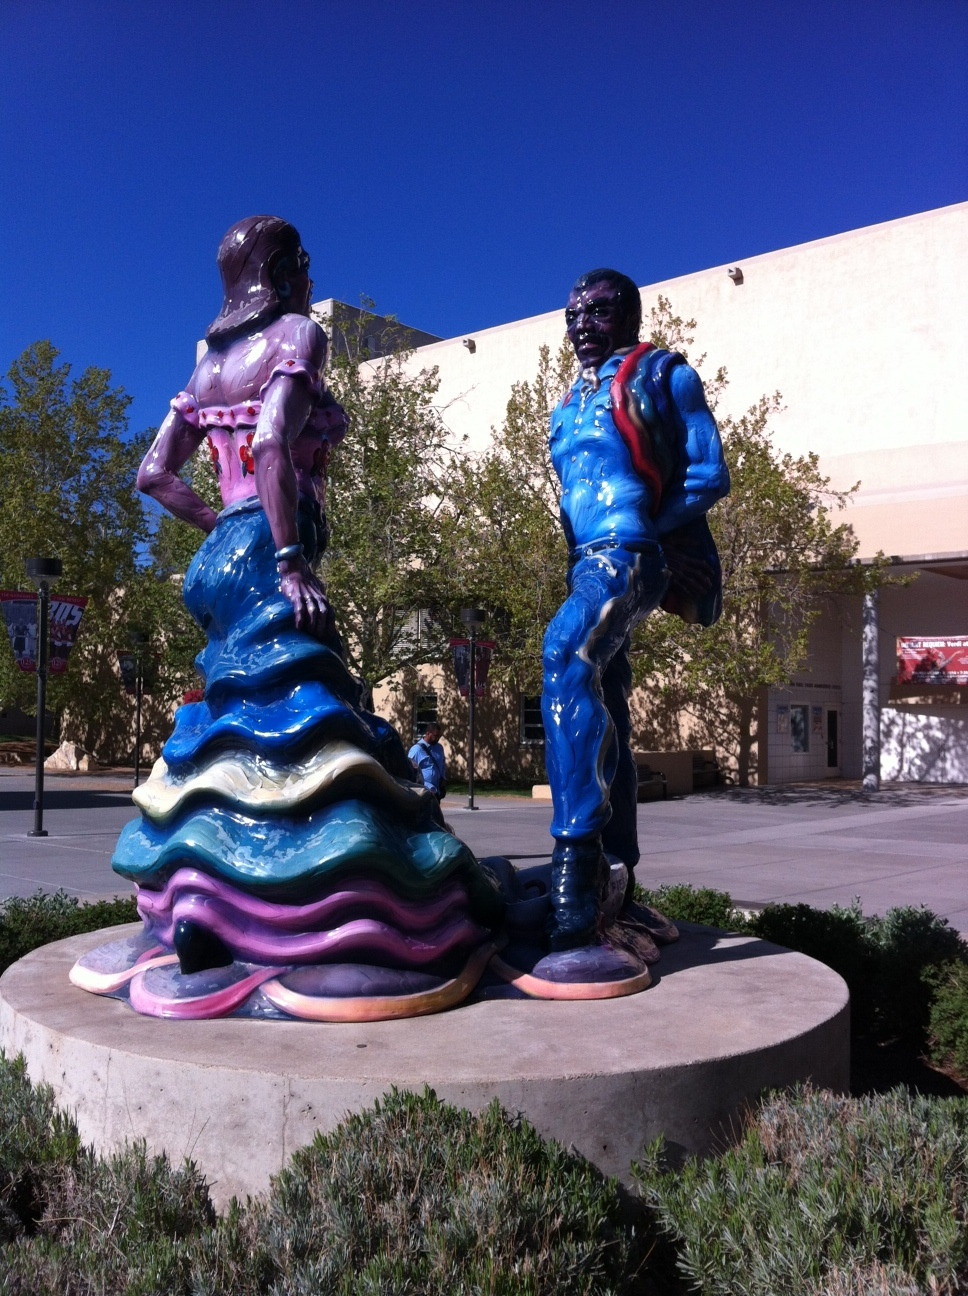 A colourful public artwork that fits with the Hispanic culture of the campus.